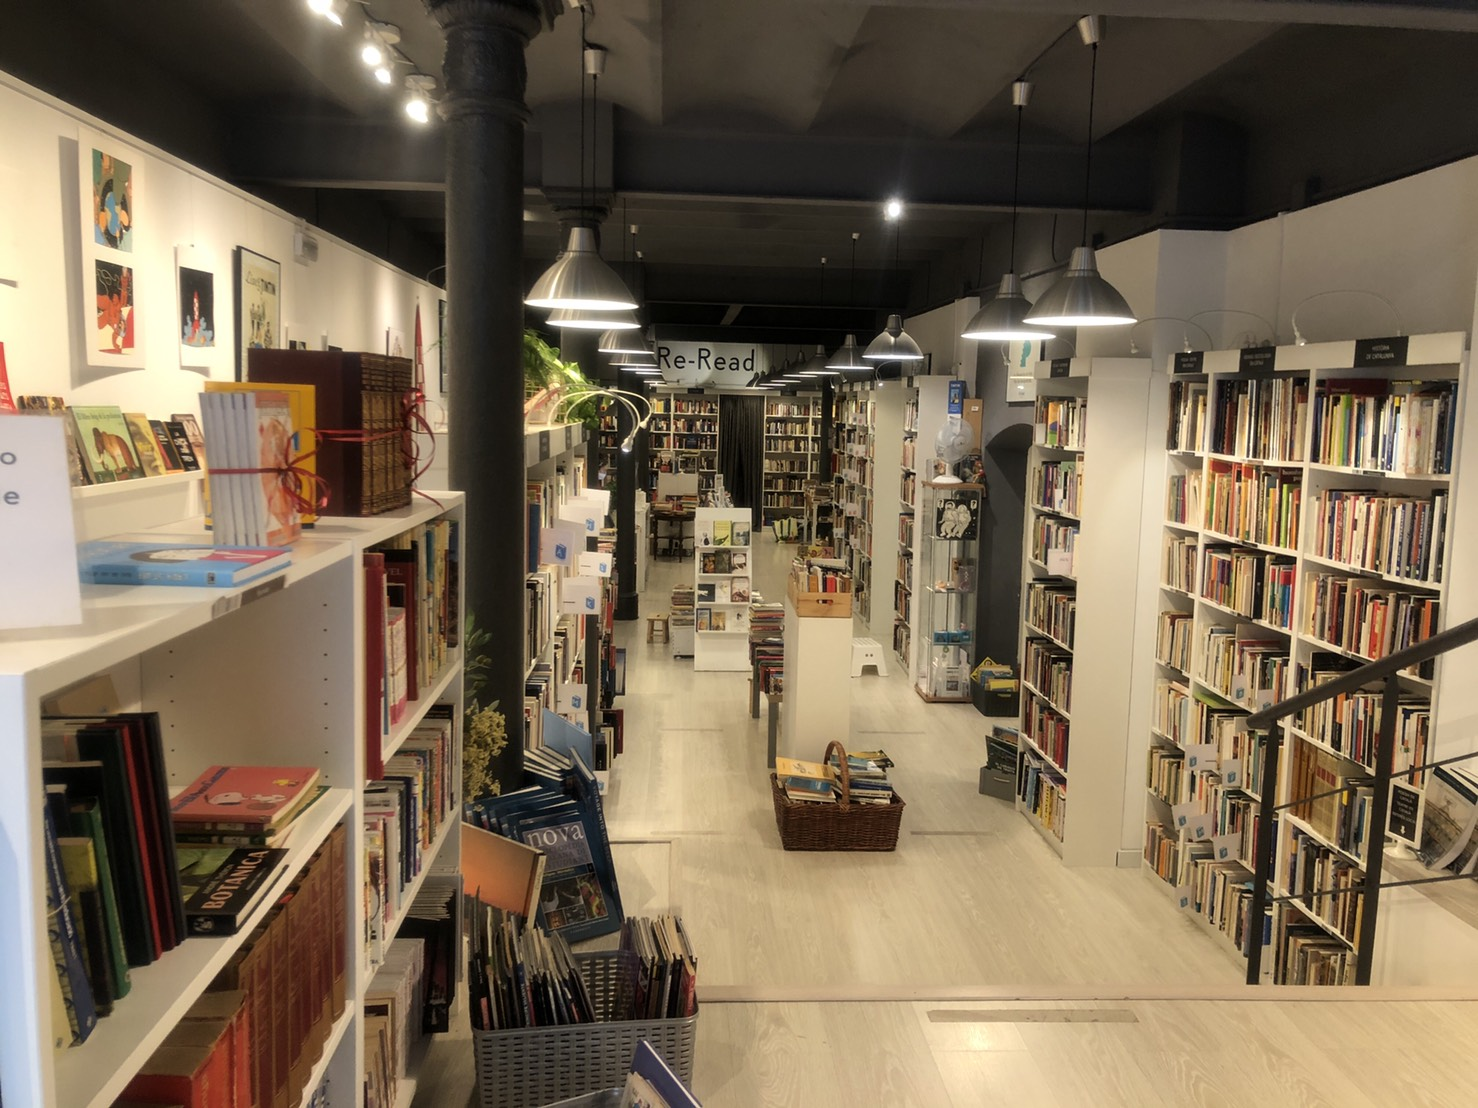 Top 6 Second-hand bookshop in Barcelona